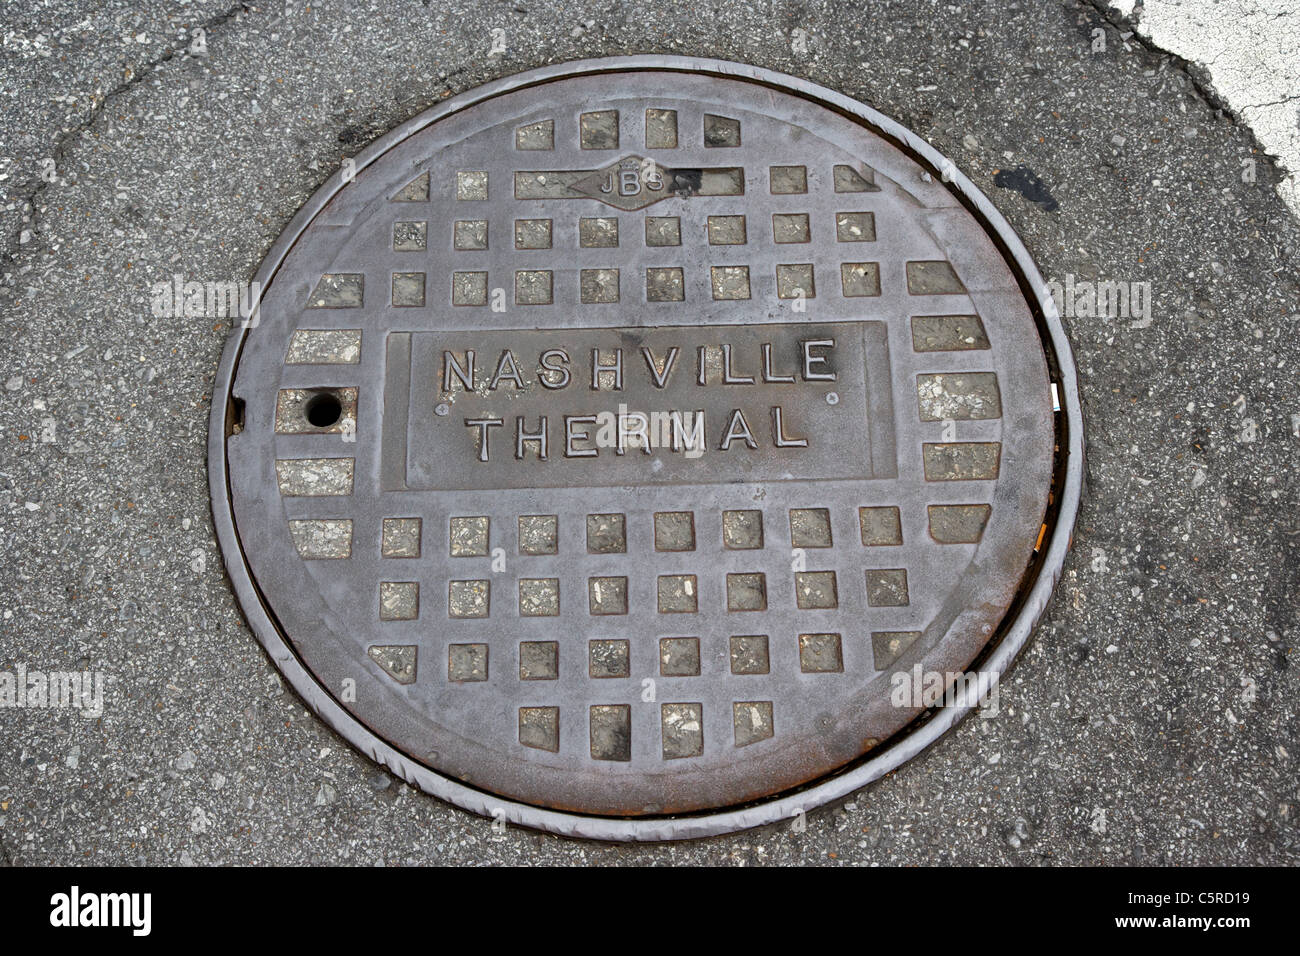 Nashville thermal manhole cover in the road Tennessee USA - Stock Image